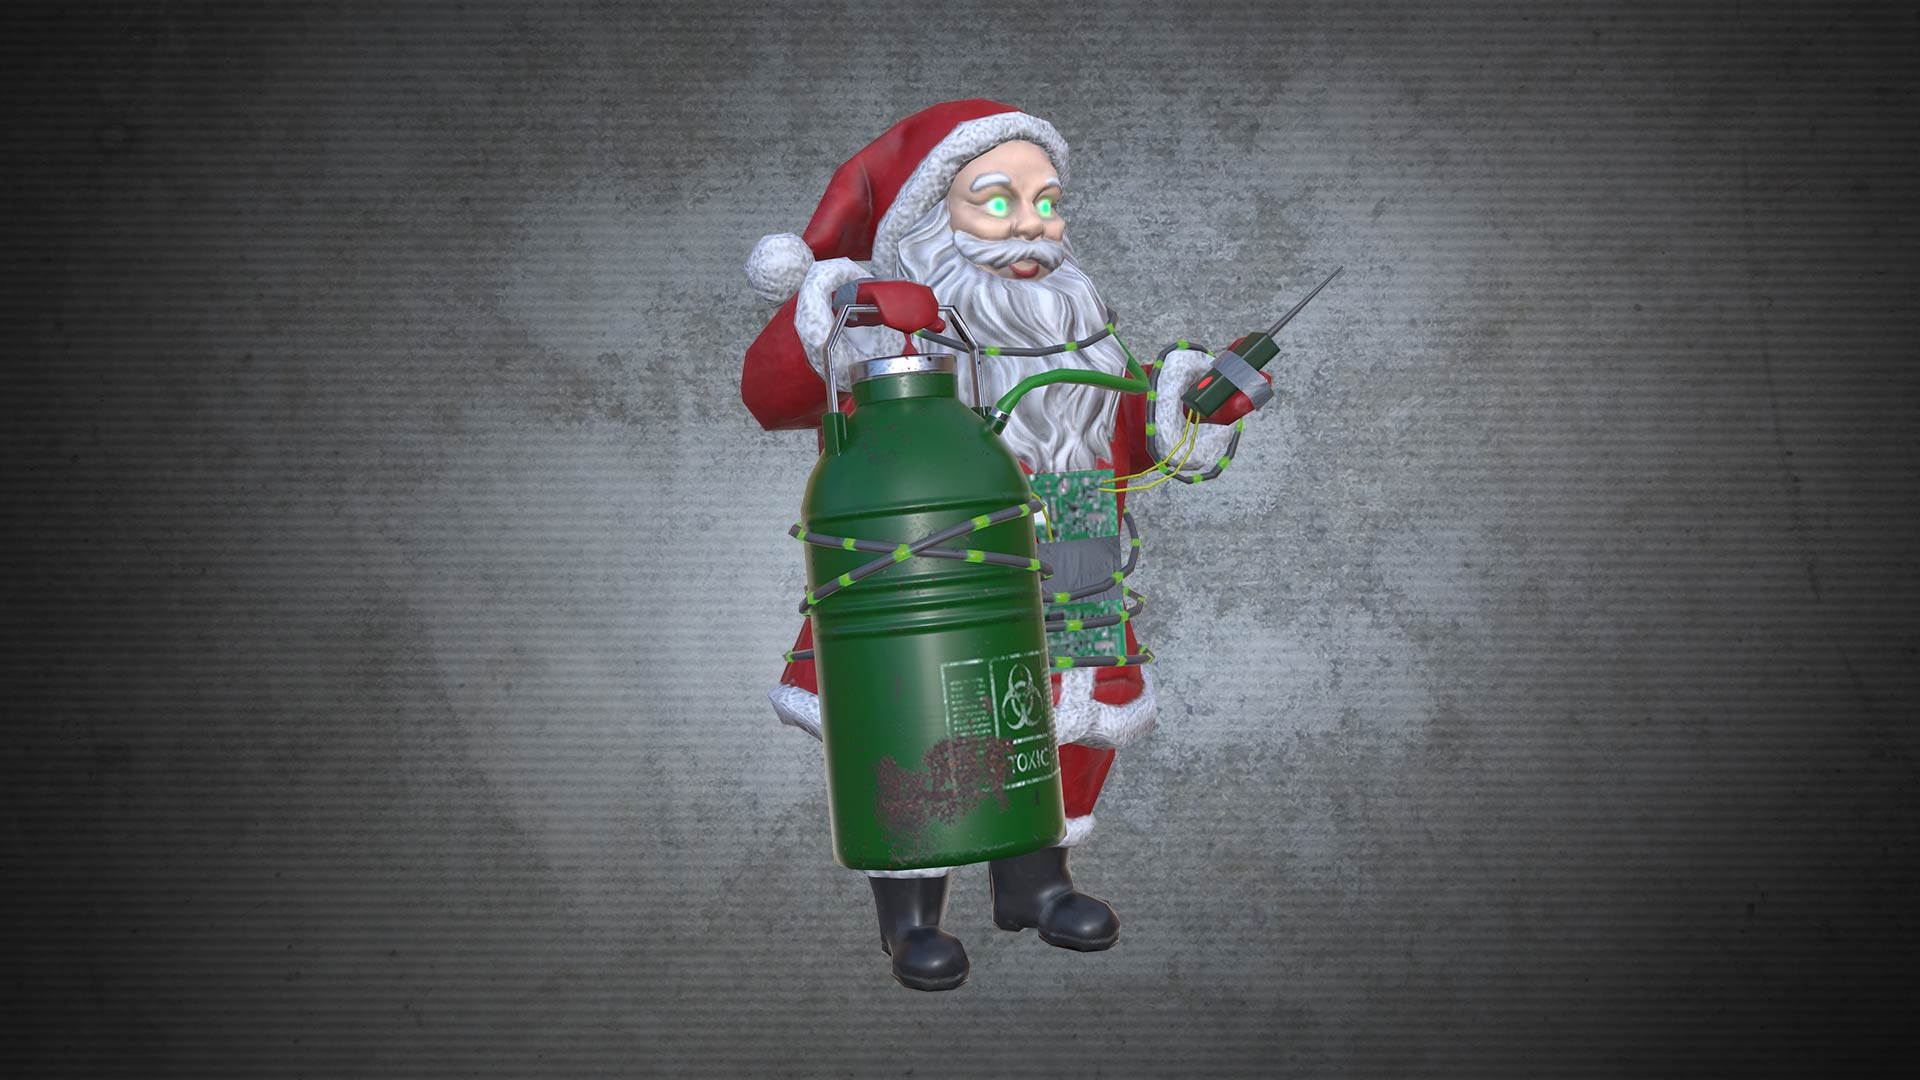 DEAD RISING 4 ACID SANTA WEAPON